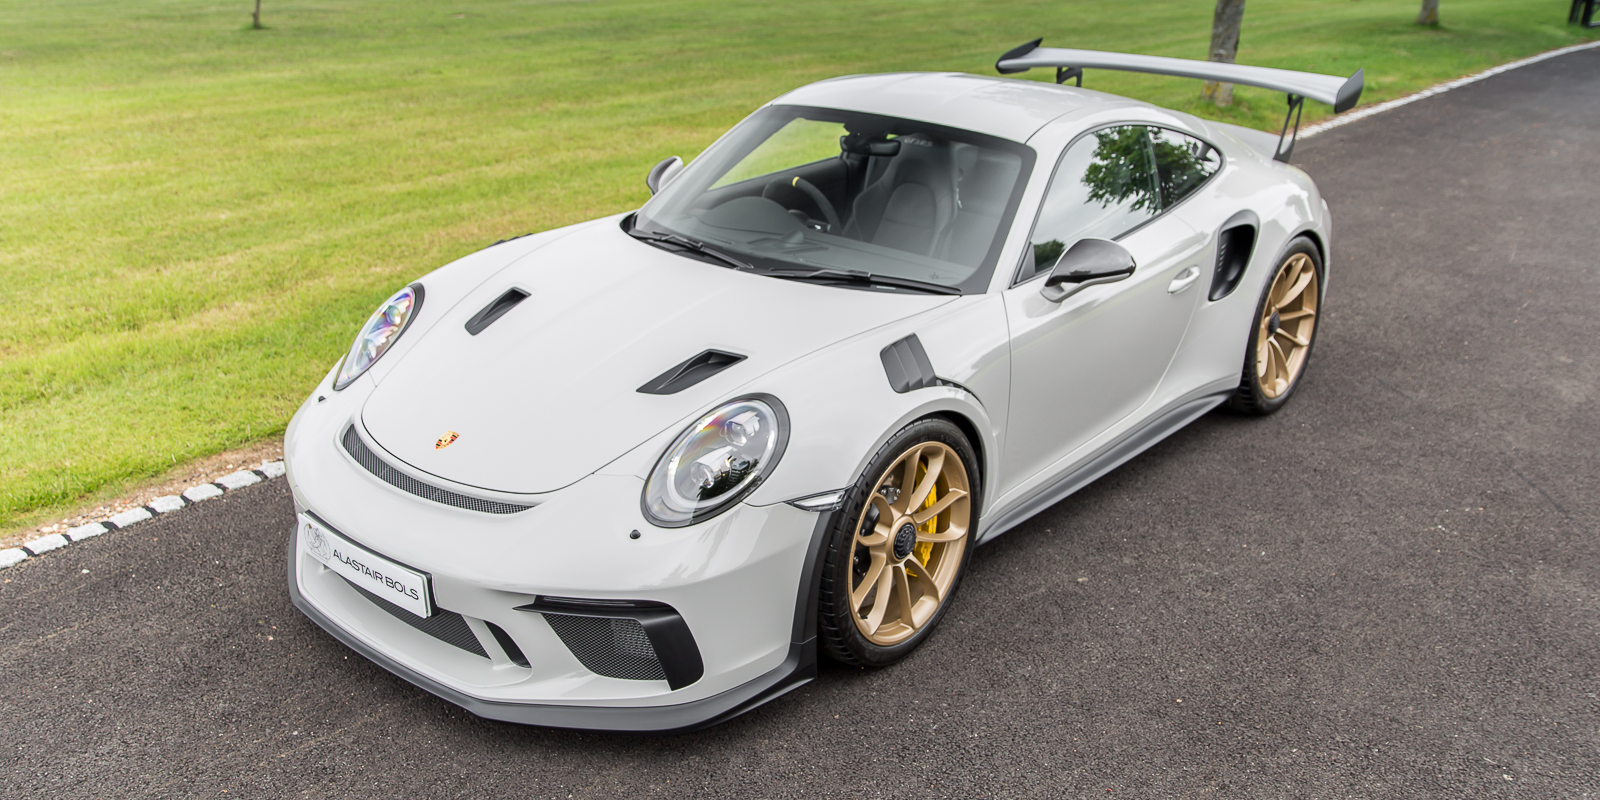 Porsche 991.2 GT3 RS Crayon Grey